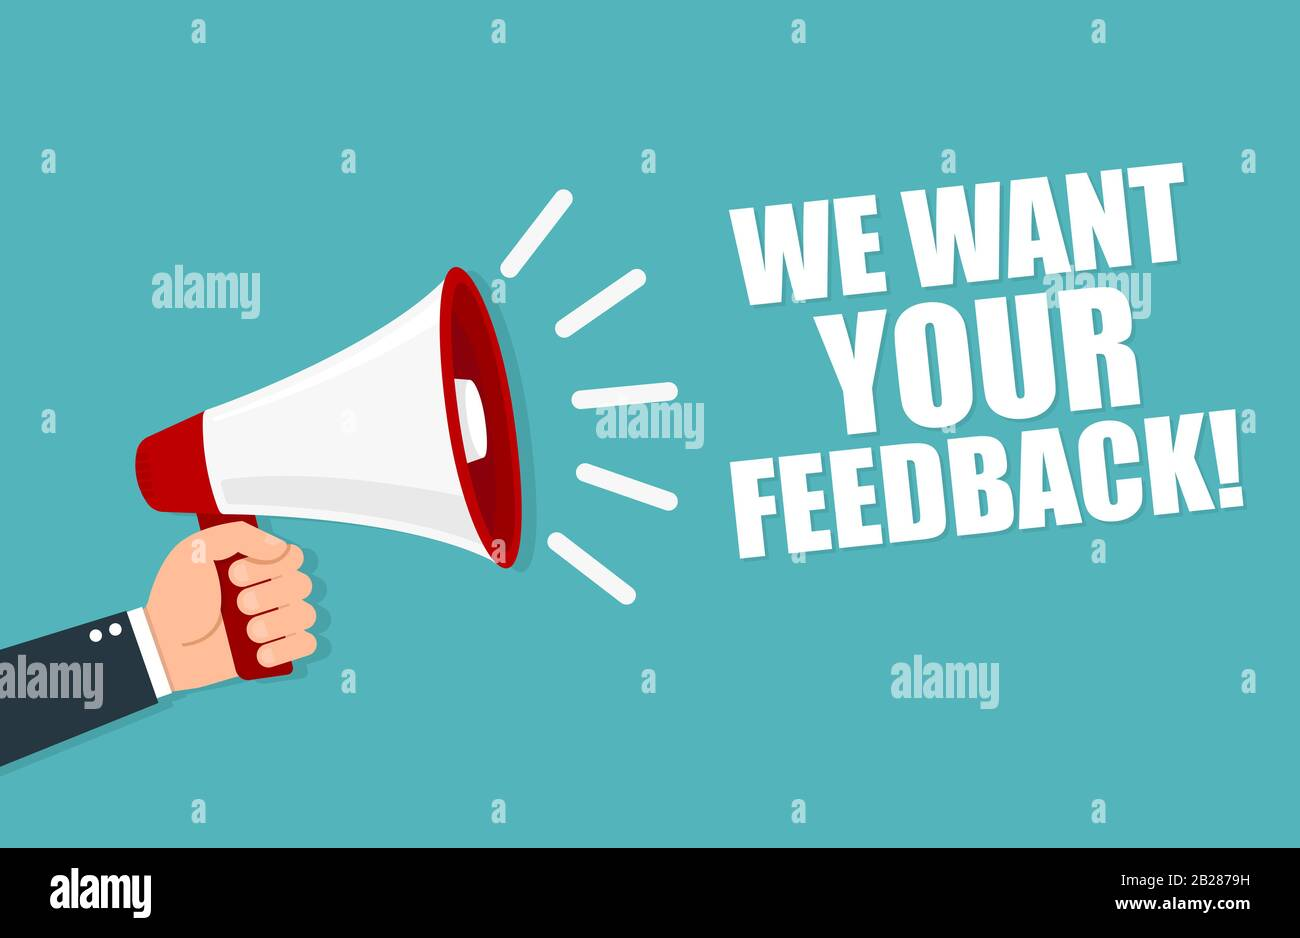 we want your feedback loudspeaker vector illustration stock vector image art alamy alamy